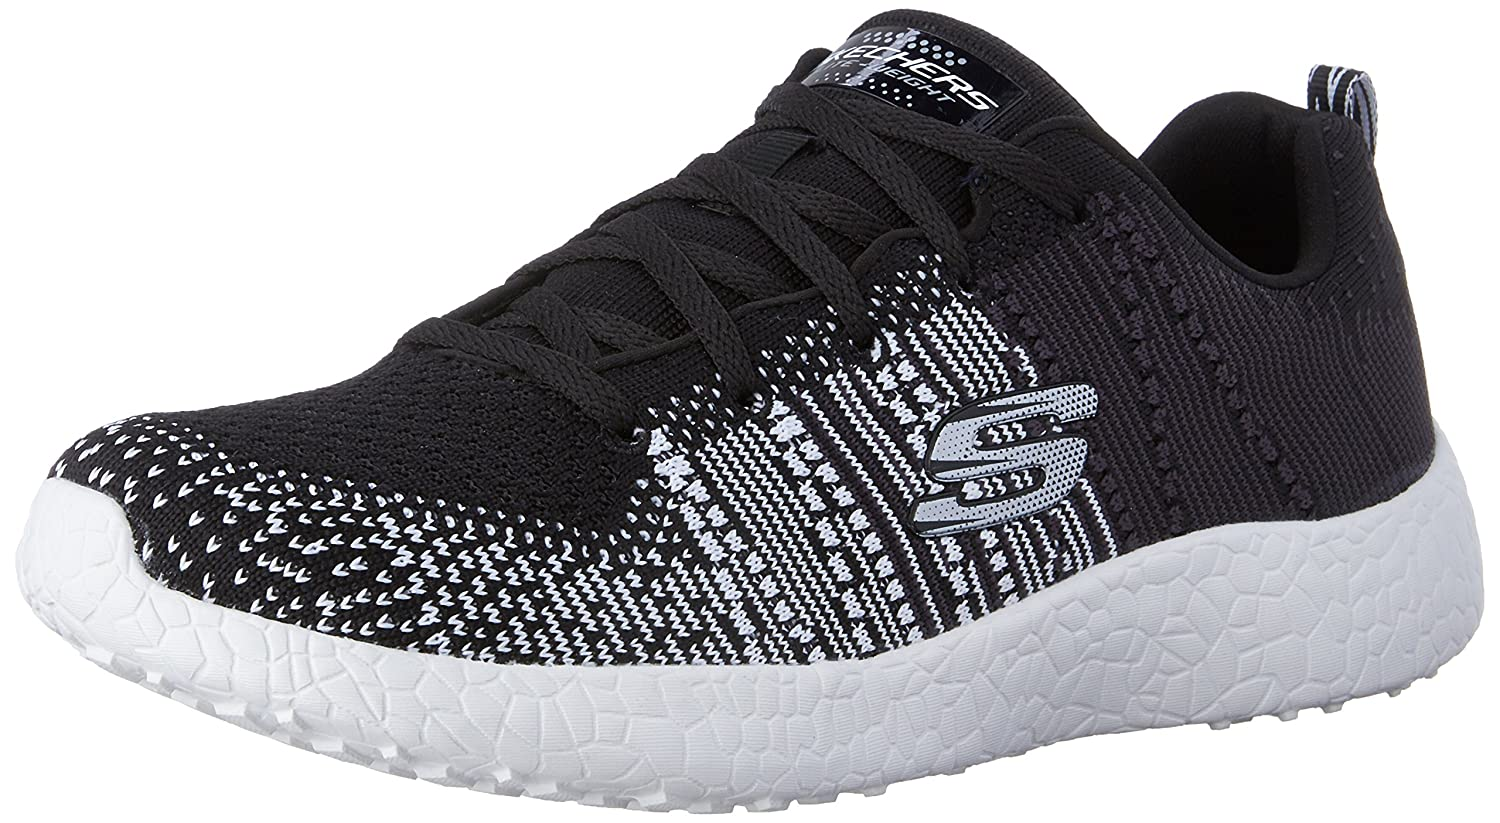 04e91c9877 Amazon.com | Skechers Sport Women's Burst Ellipse Fashion Sneaker | Fashion  Sneakers